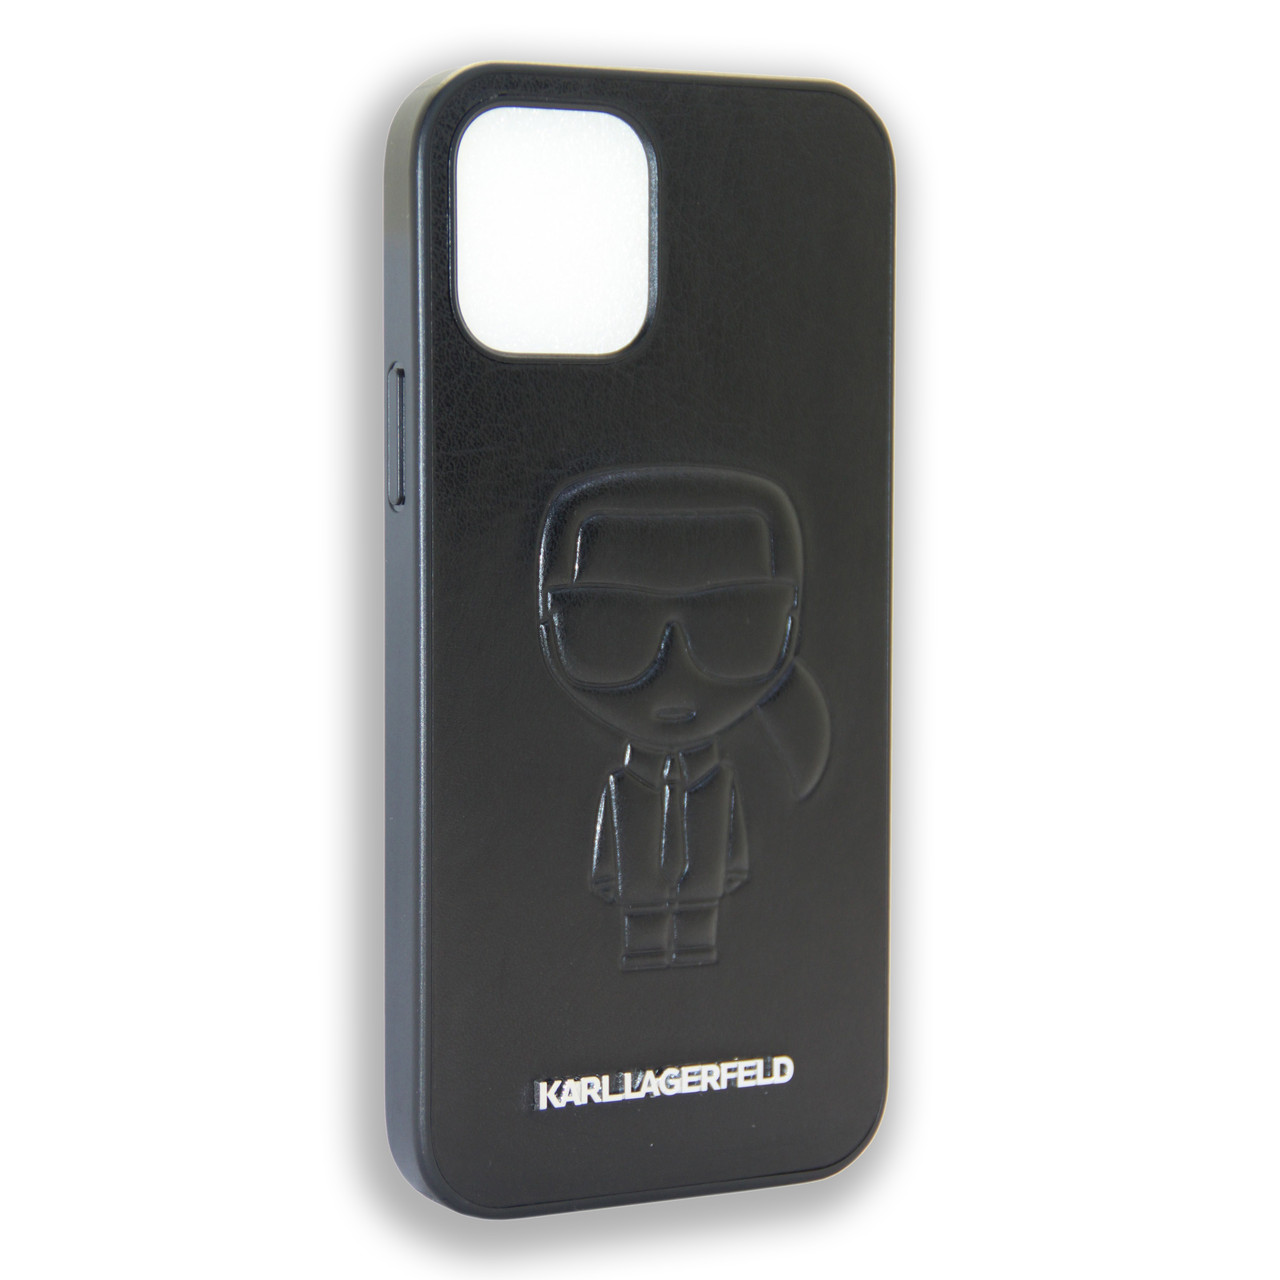 Karl Lagerfeld Collections IKONIK OUTLINE Black Apple iPhone 12 Max, iPhone 12 Pro